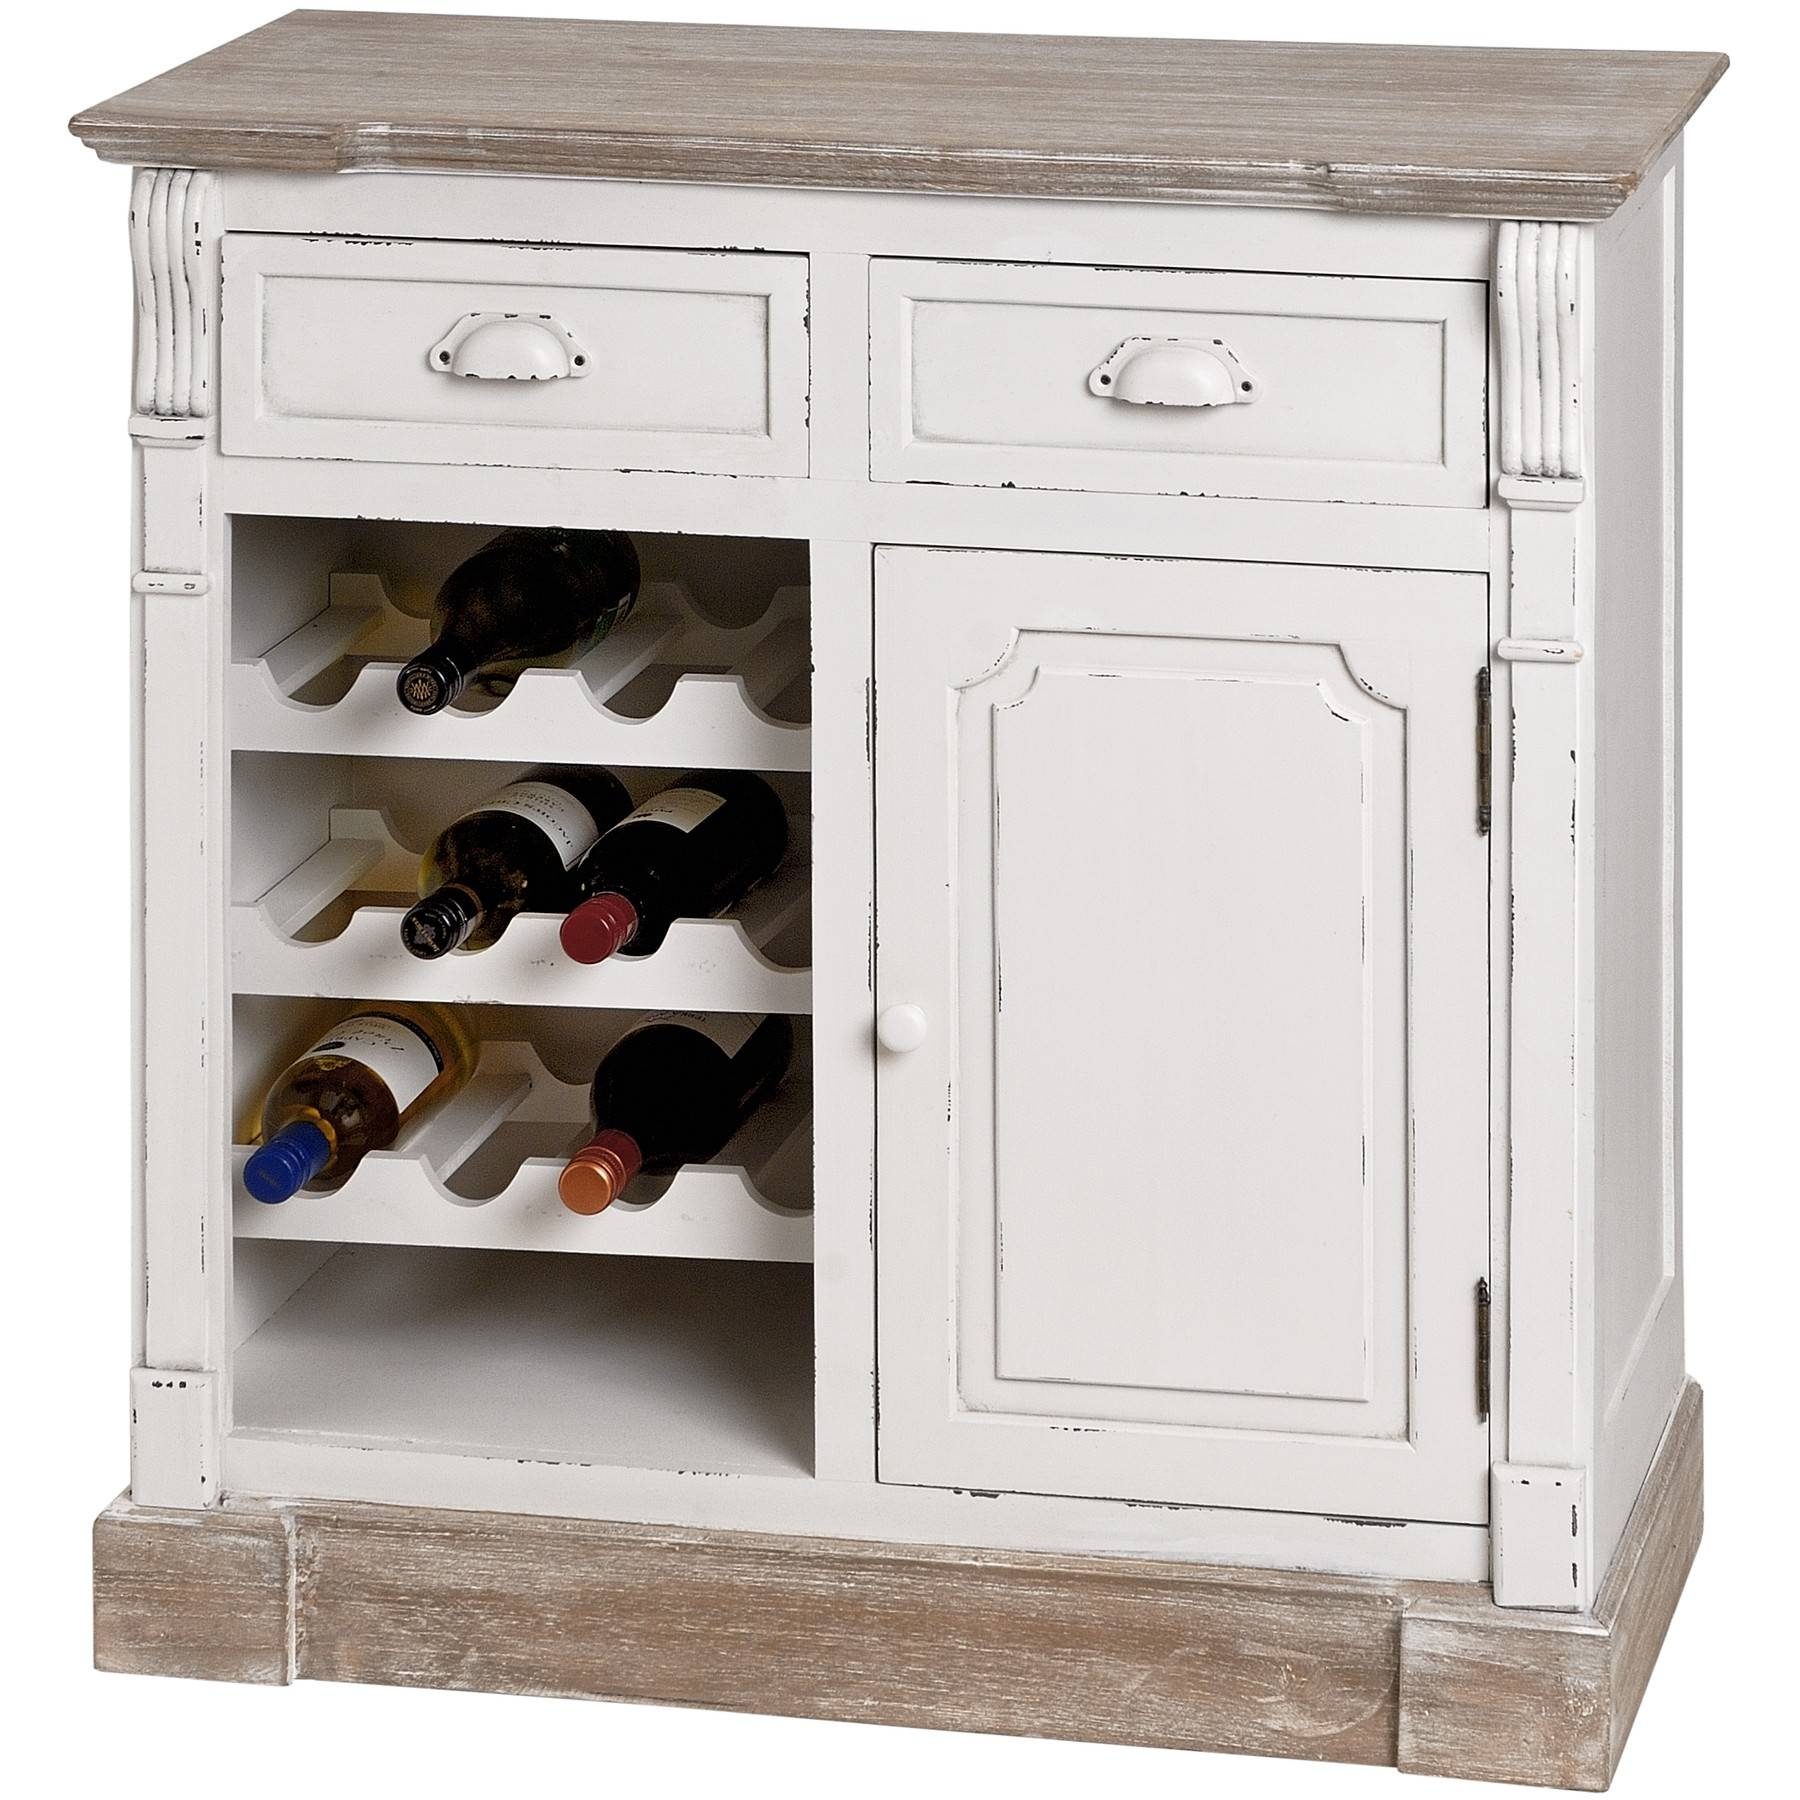 Small Sideboard With Wine Rack – Mira Design Interiors in Small Sideboard Cabinets (Image 26 of 30)